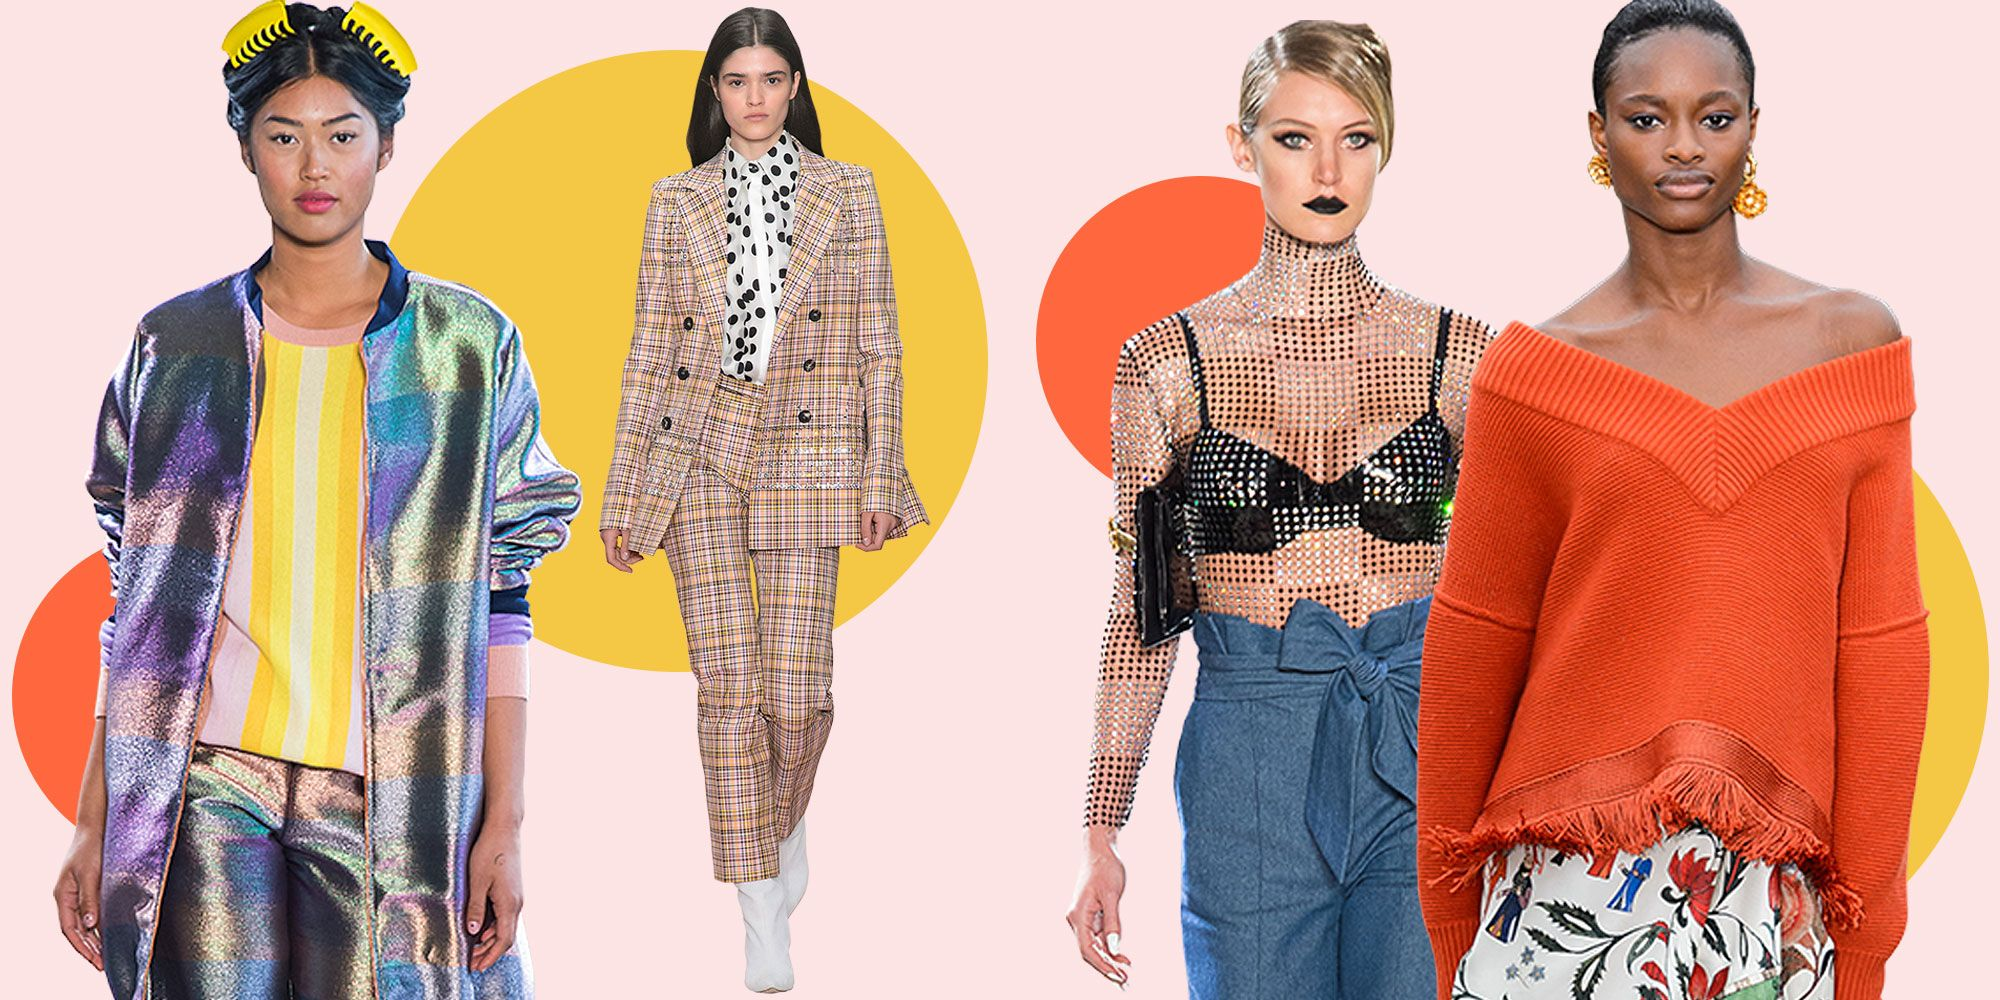 8 Spring 8 Fashion Trends - Top Spring Runway Trends for Women